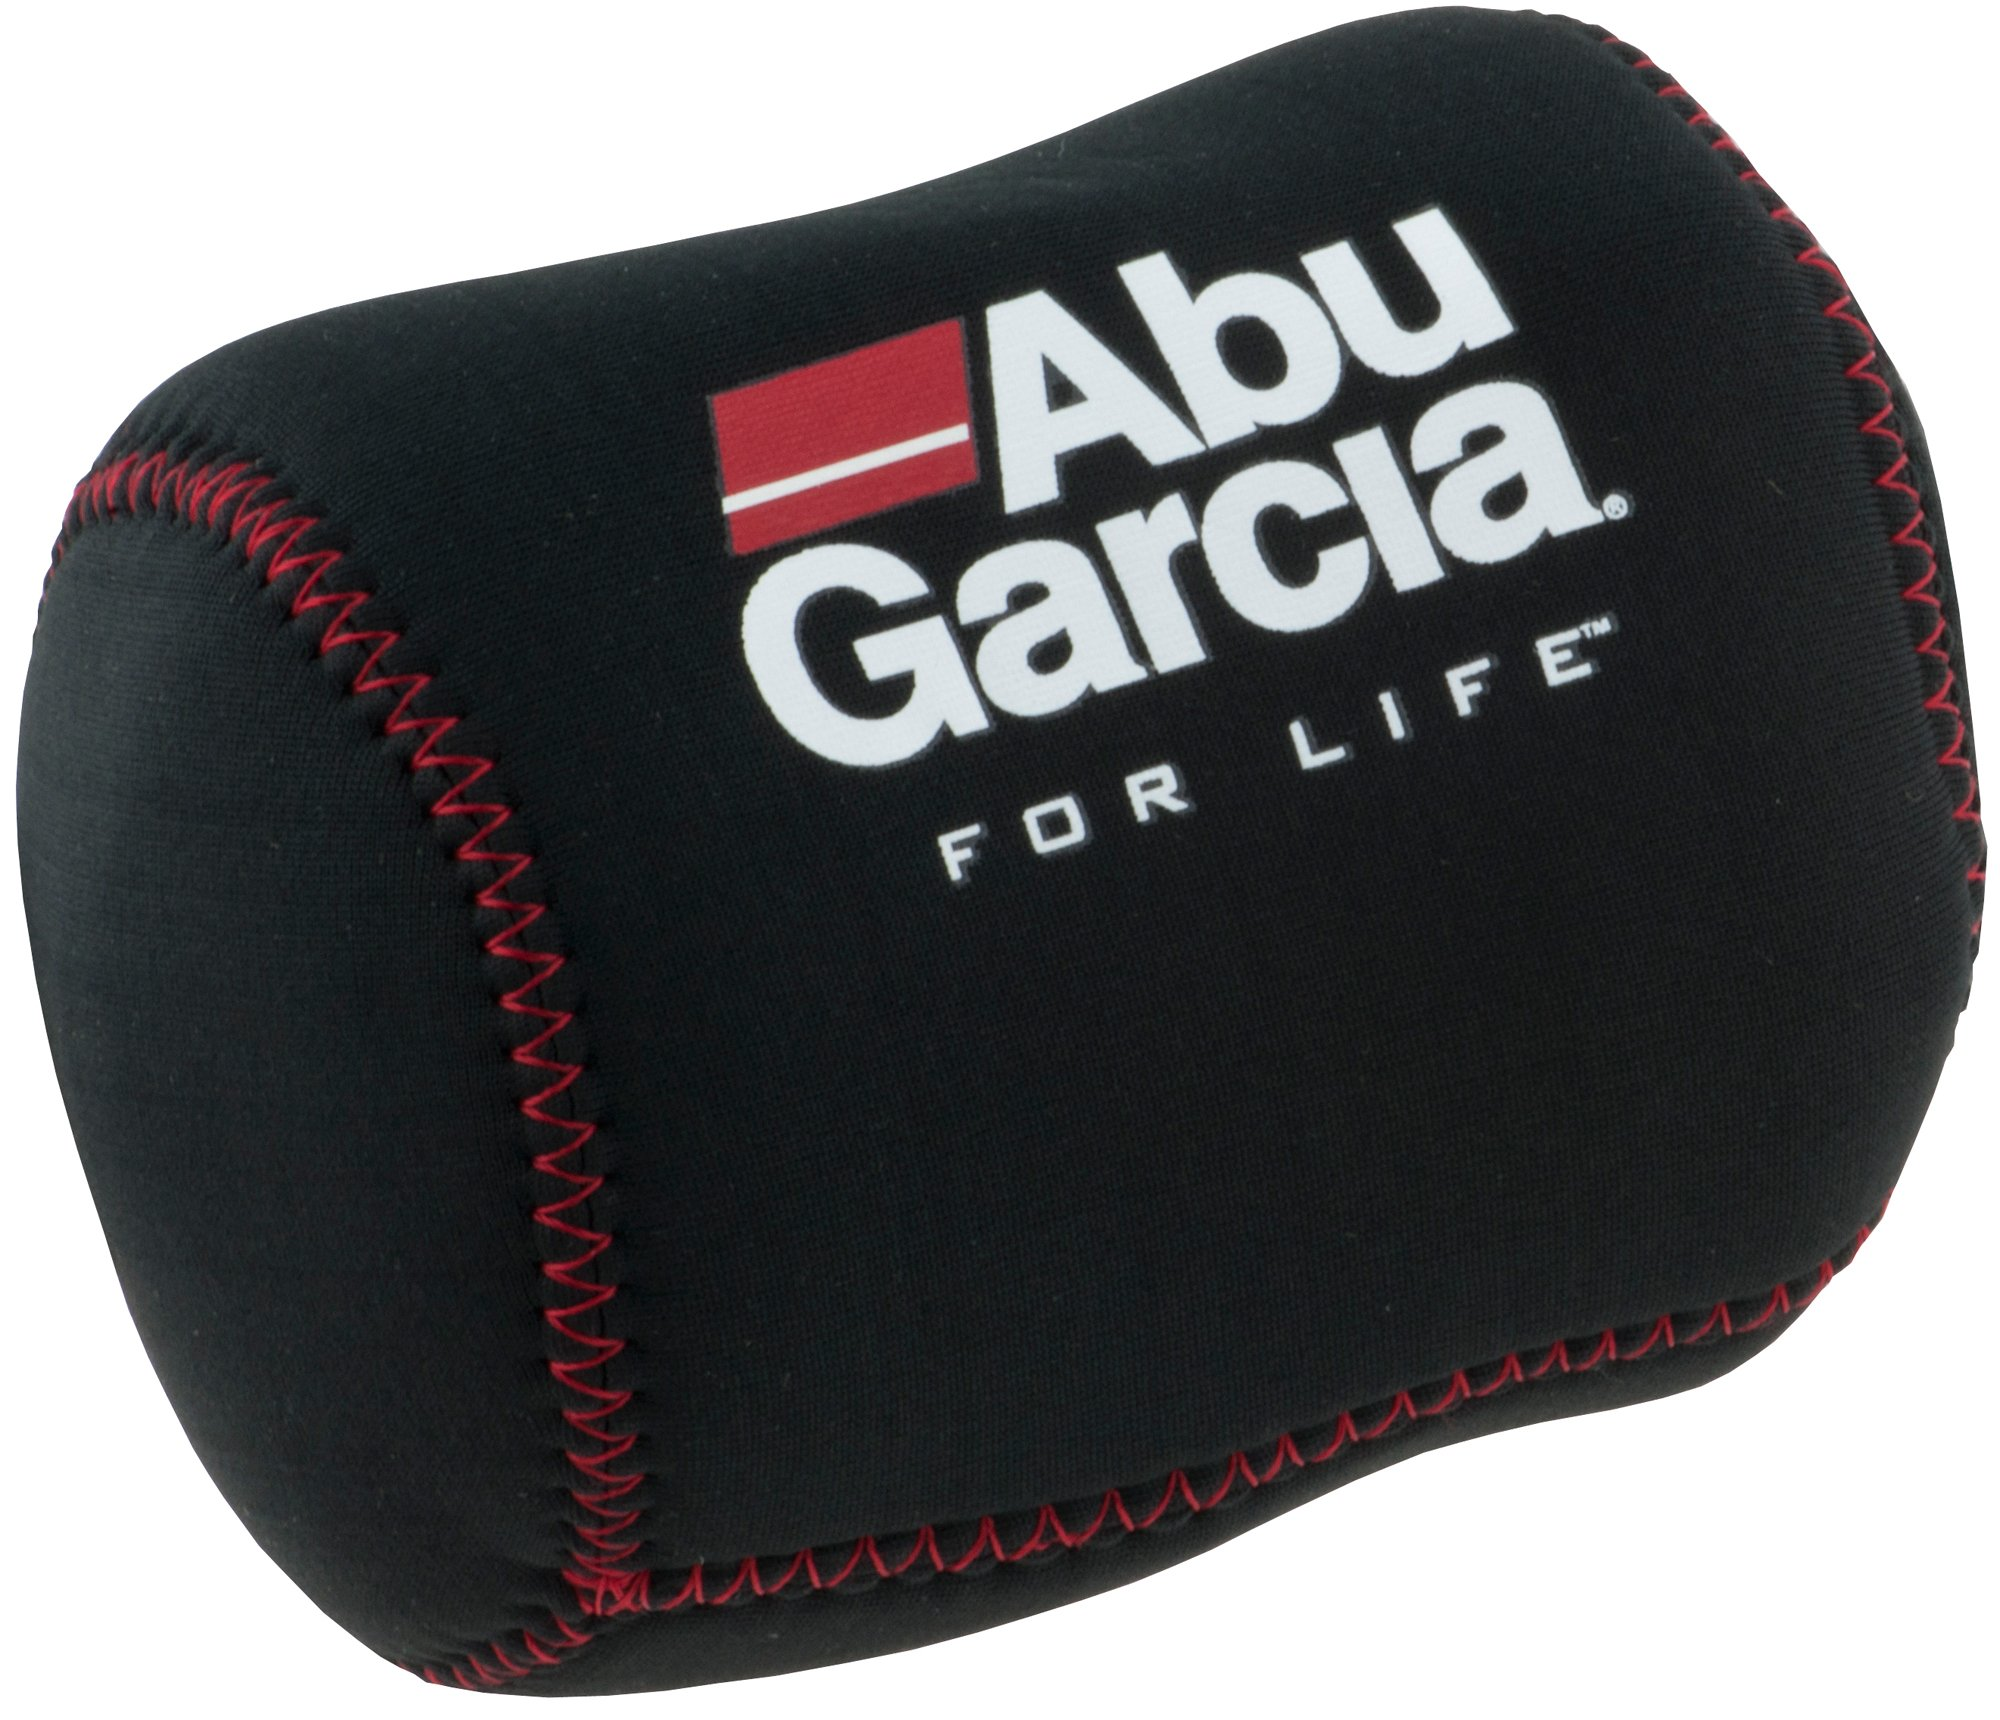 Berkley Abu Garcia Neoprene Low Profile Fishing Reel Cover by Berkley